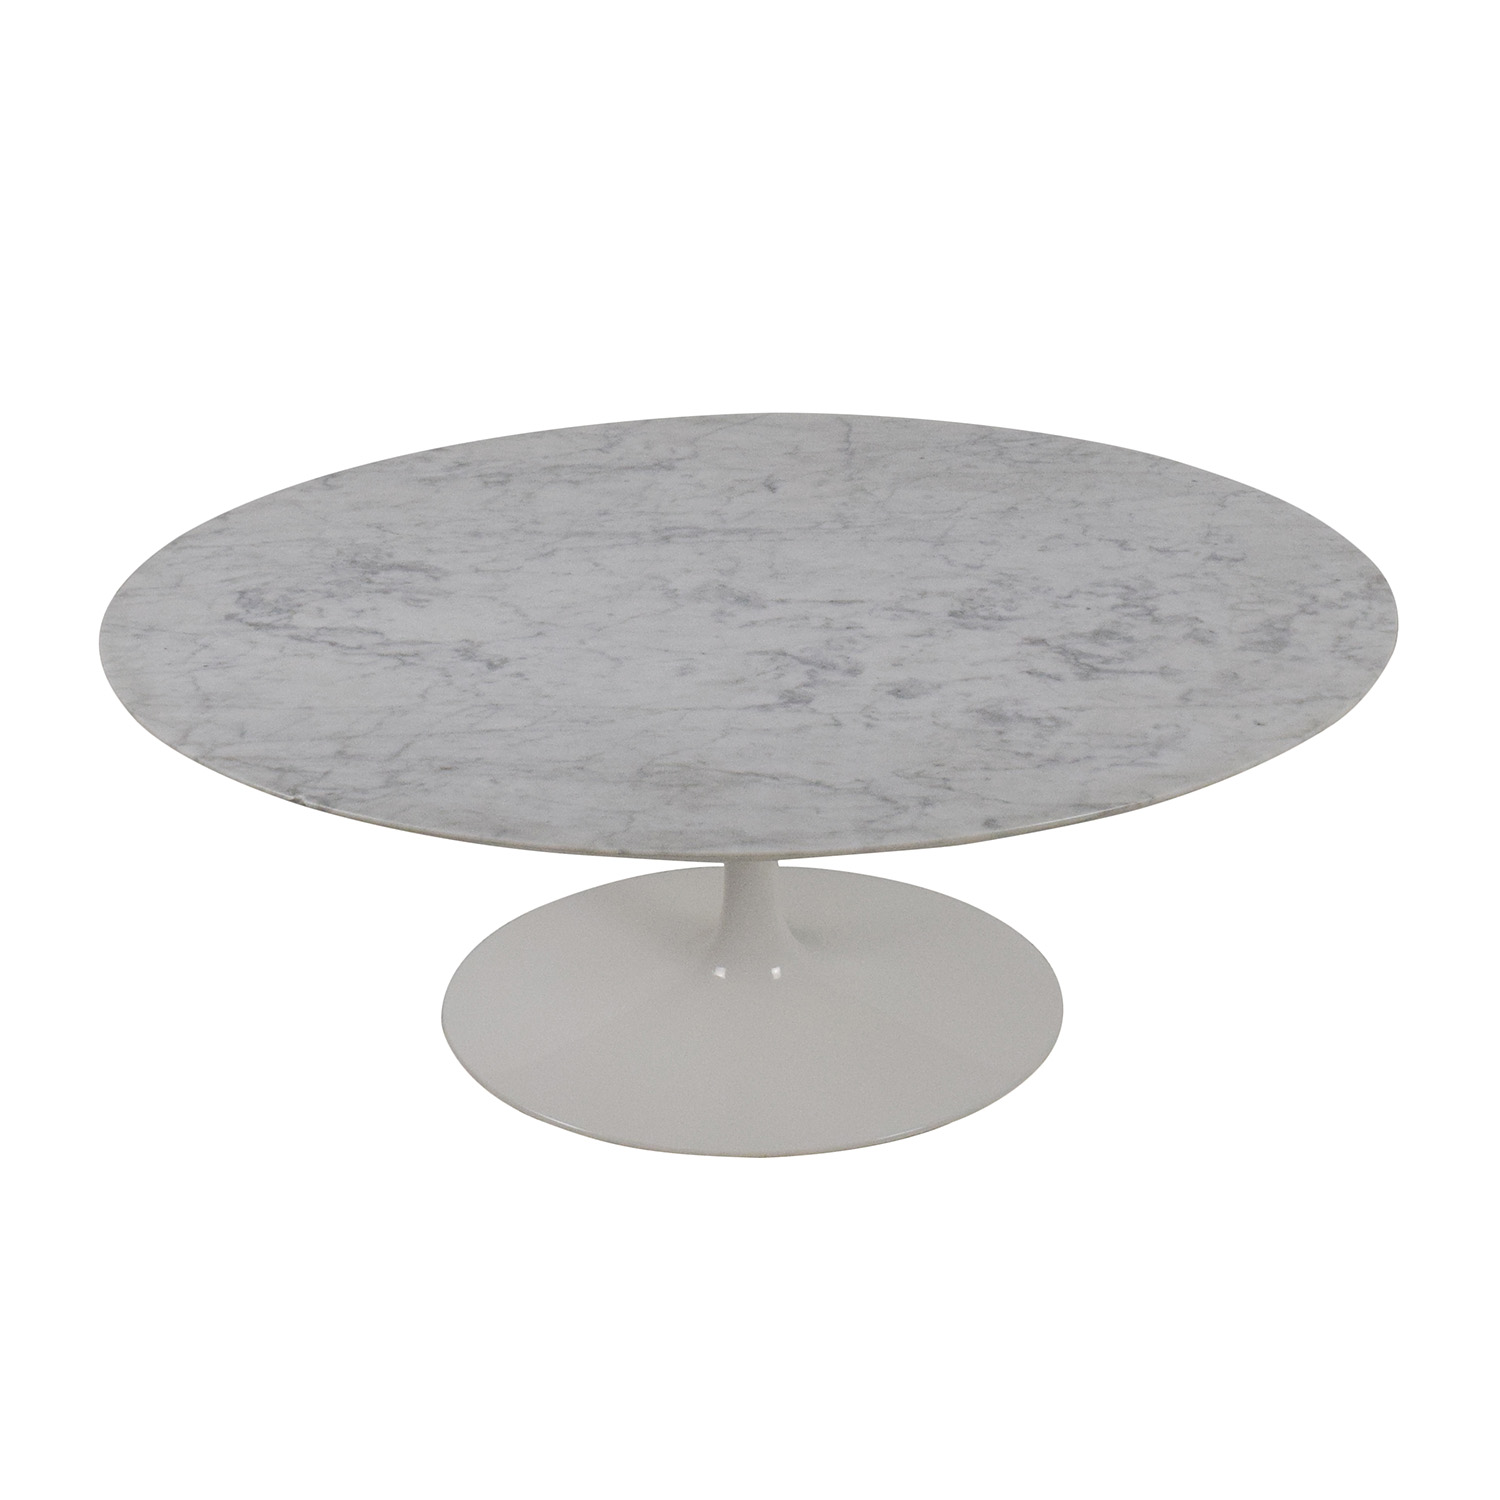 Knoll Saarinen 62 Off Knoll Knoll Saarinen Oval Coffee Table Tables